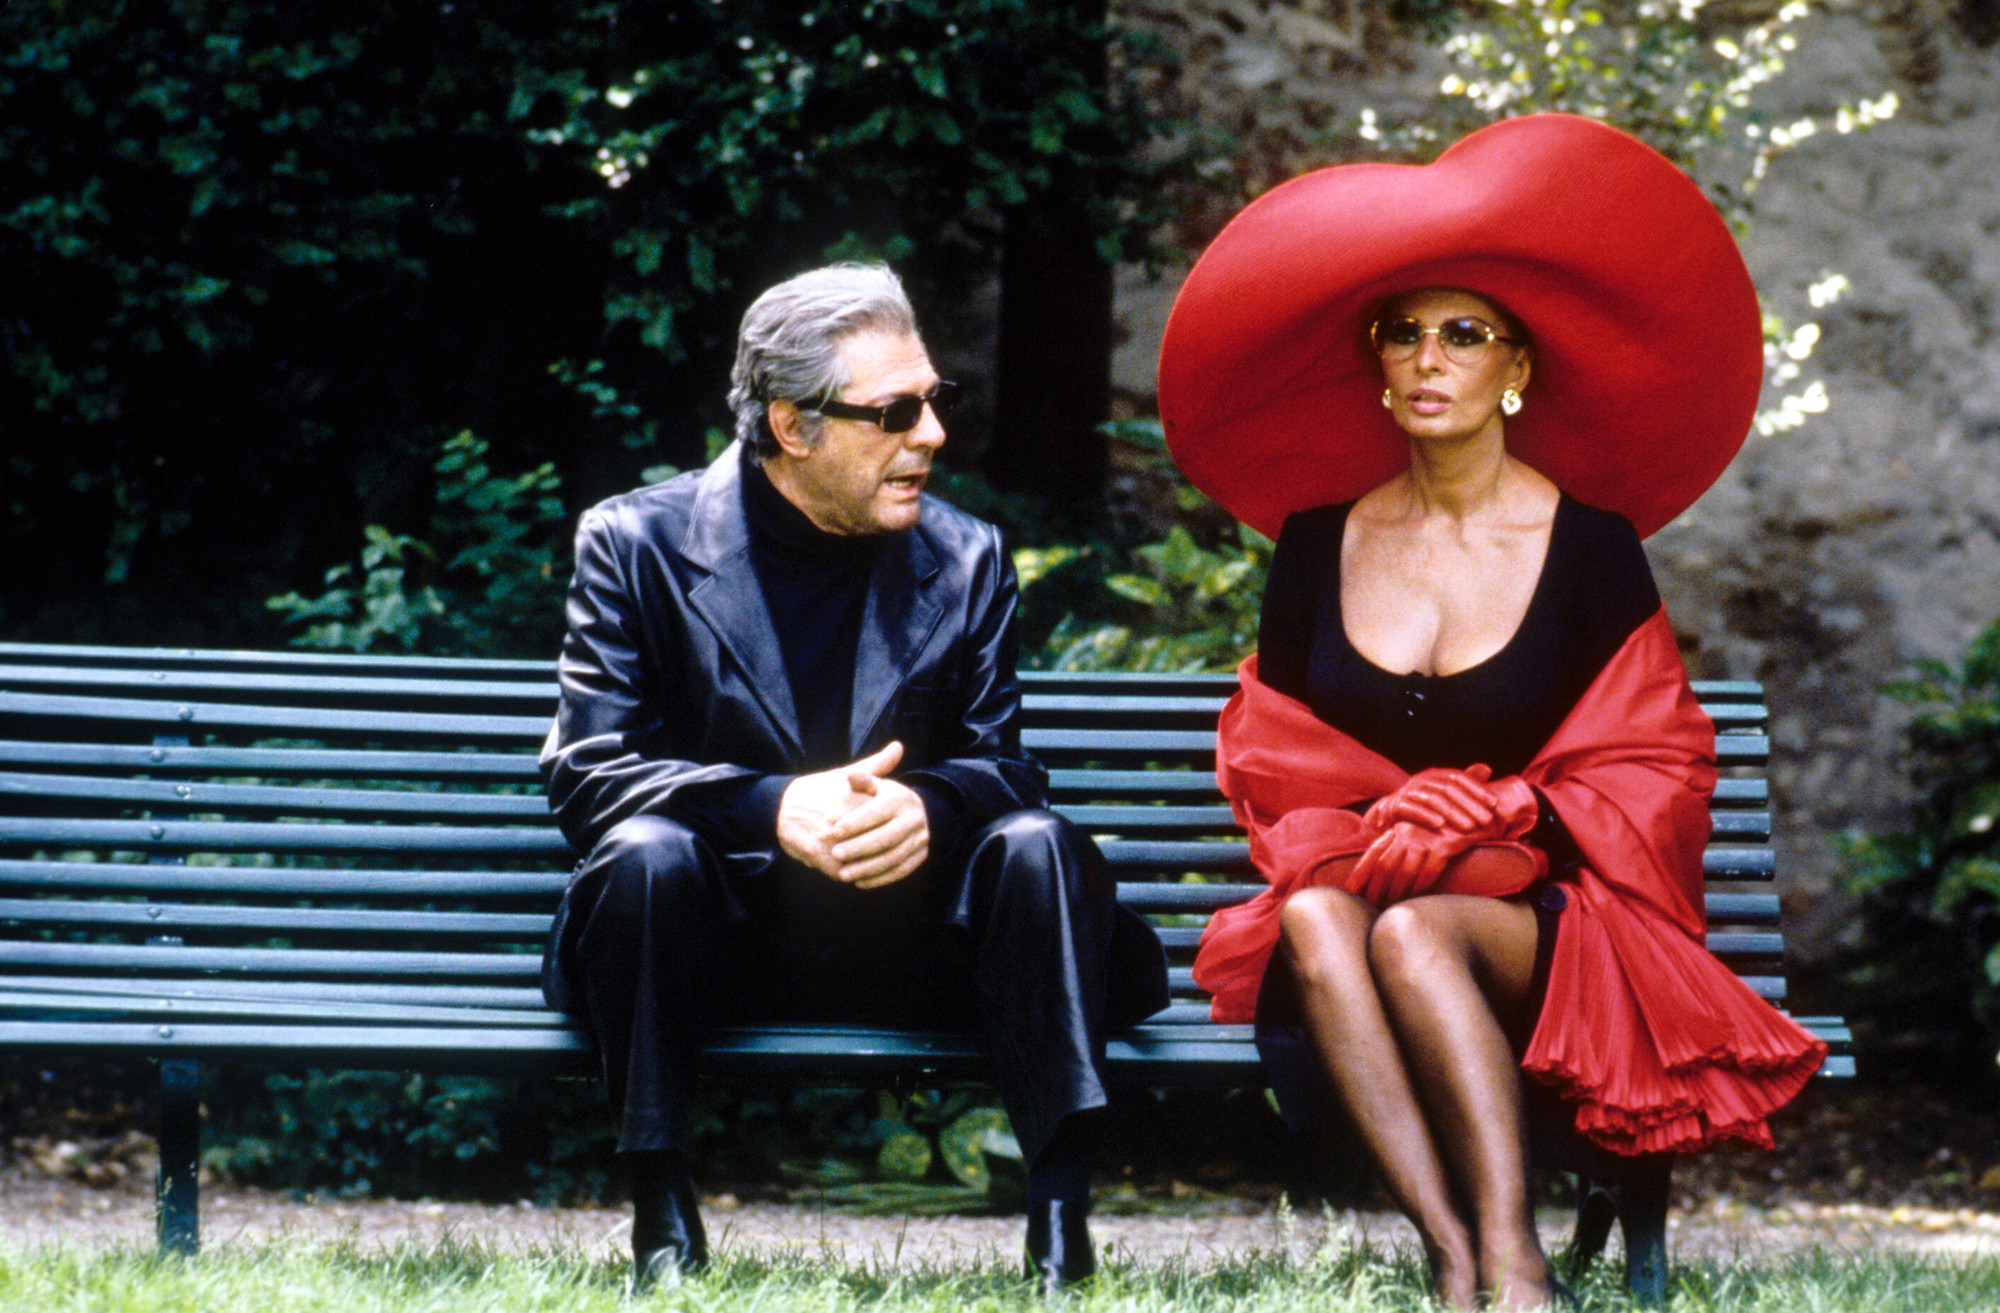 Ready to Wear. 1994. USA. Directed by Robert Altman. Courtesy Miramax Films/Photofest